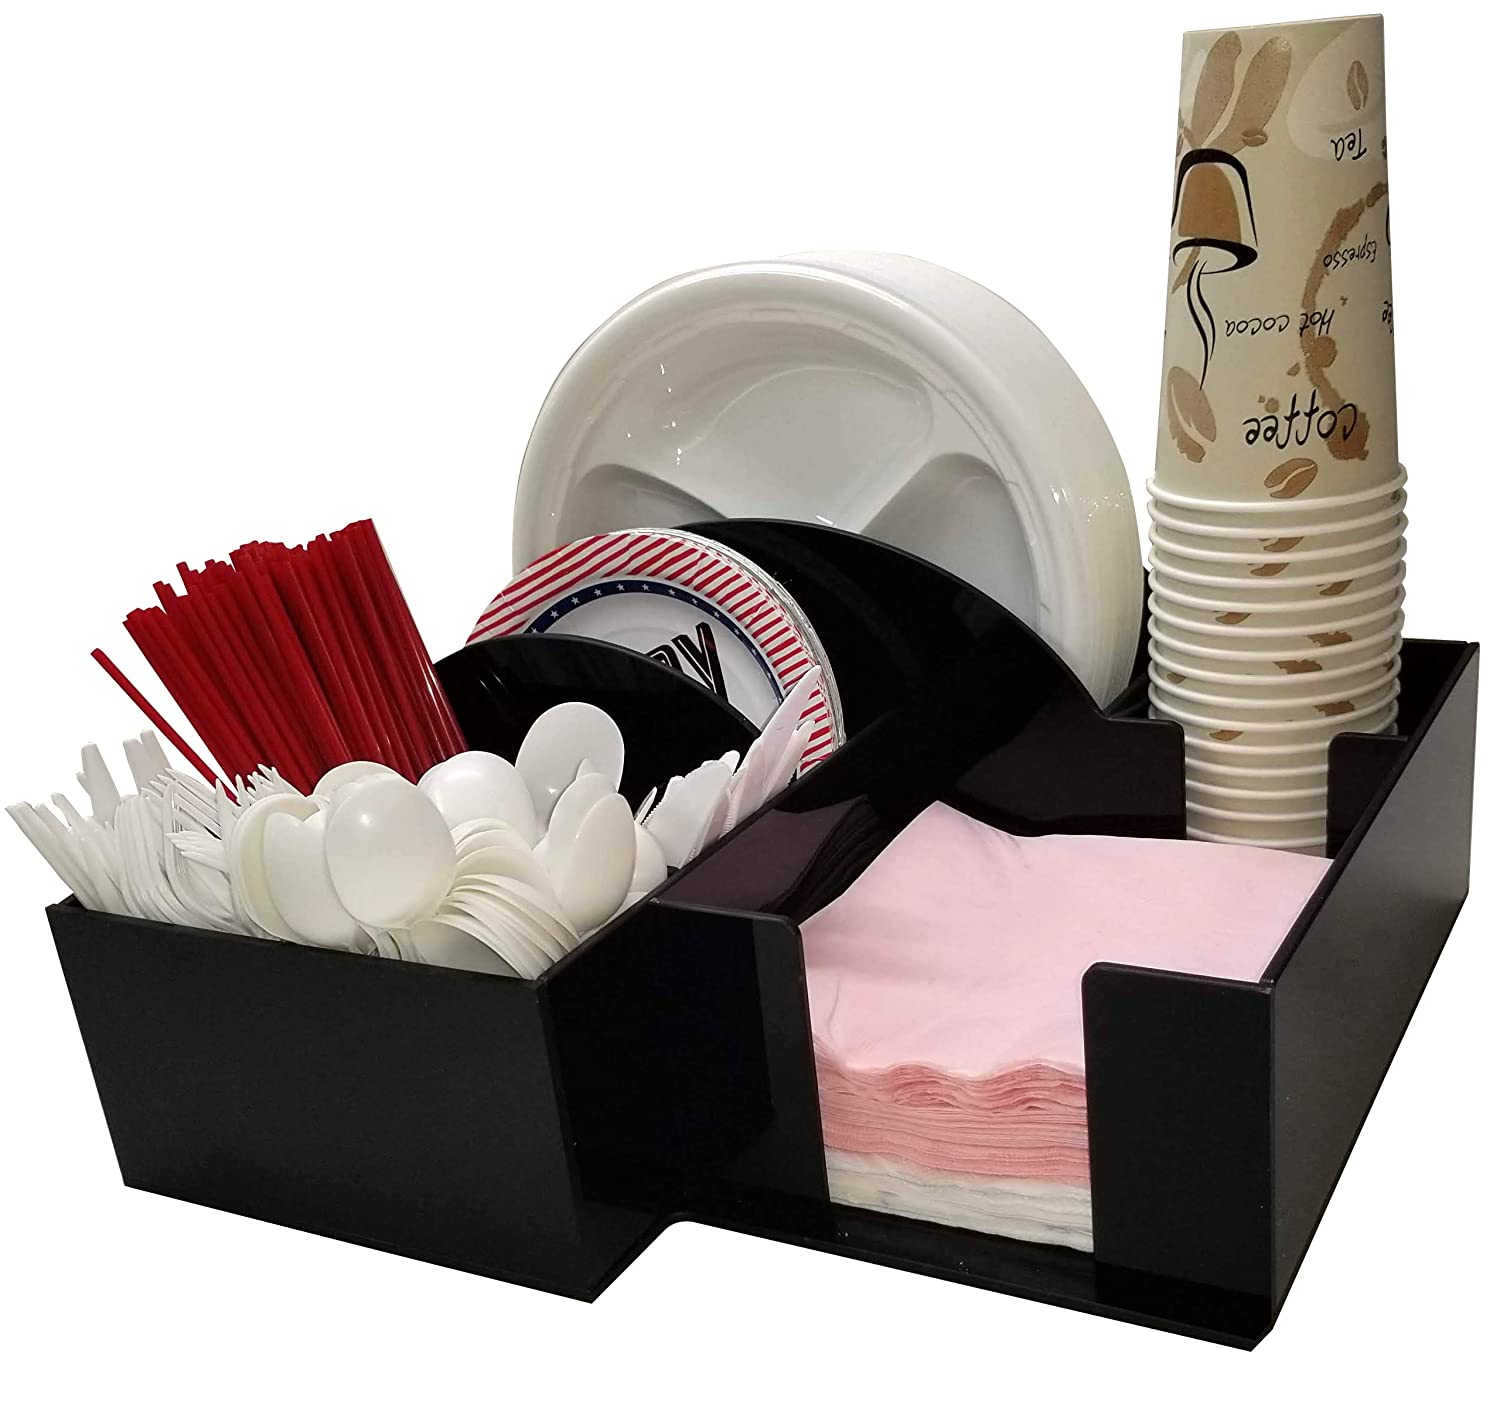 Paper Plate Dispenser and Appetizers Plate, Bowl or Napkin barbecue Holder with Cup Holder Knife Fork Spoon Organizer, BBQ or Picnic Caddy (3017)